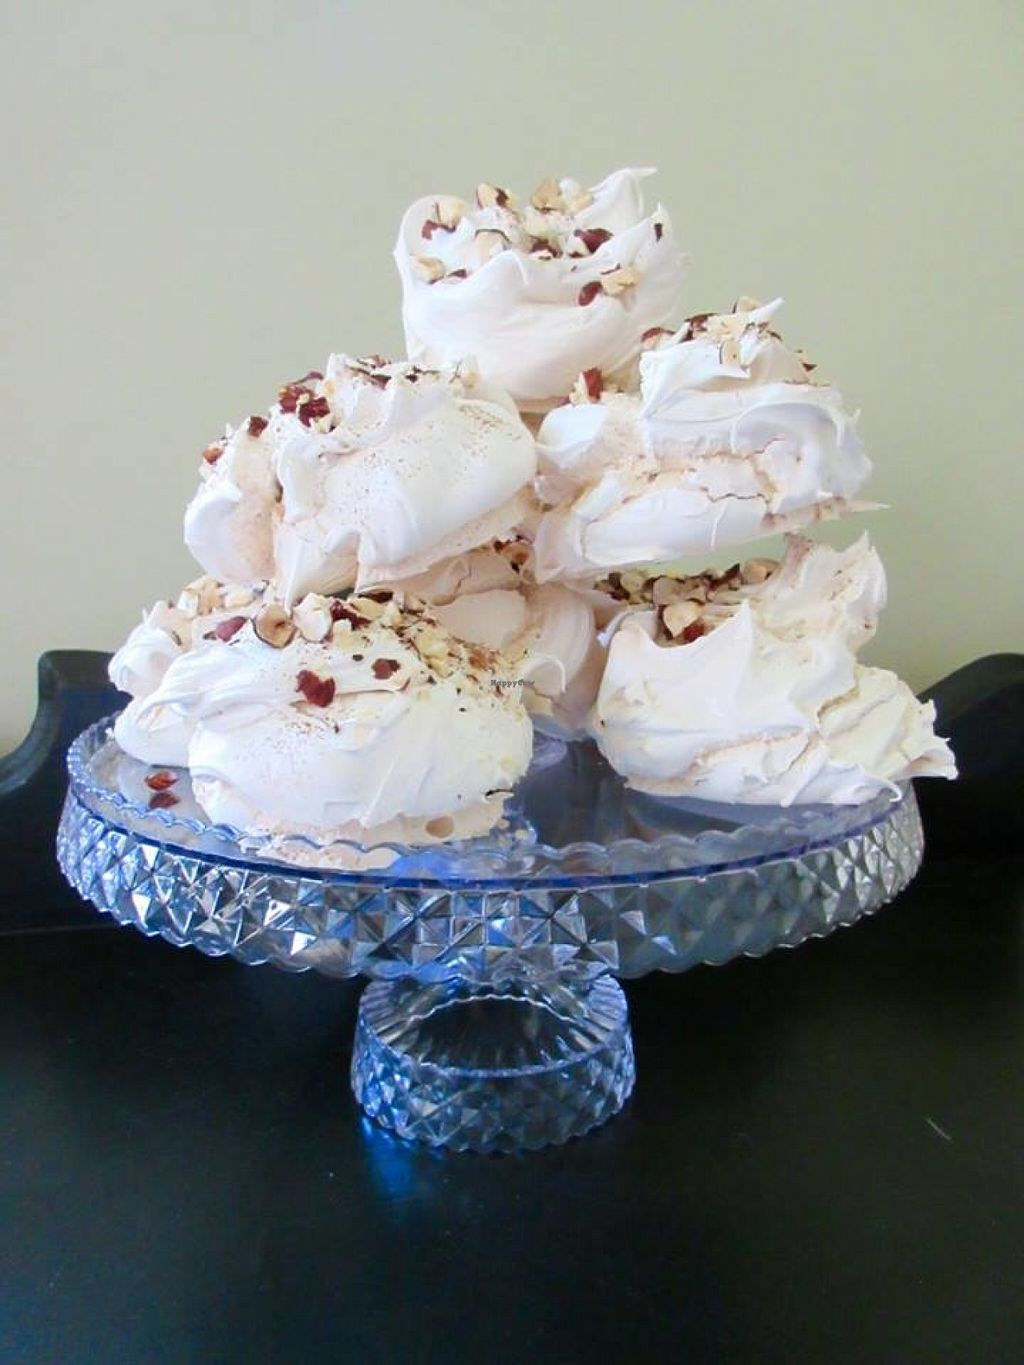 """Photo of Homebaked   by <a href=""""/members/profile/Emmagraham"""">Emmagraham</a> <br/>So Sweet.. hazelnut and cinnamon meringues <br/> May 29, 2016  - <a href='/contact/abuse/image/74342/151237'>Report</a>"""